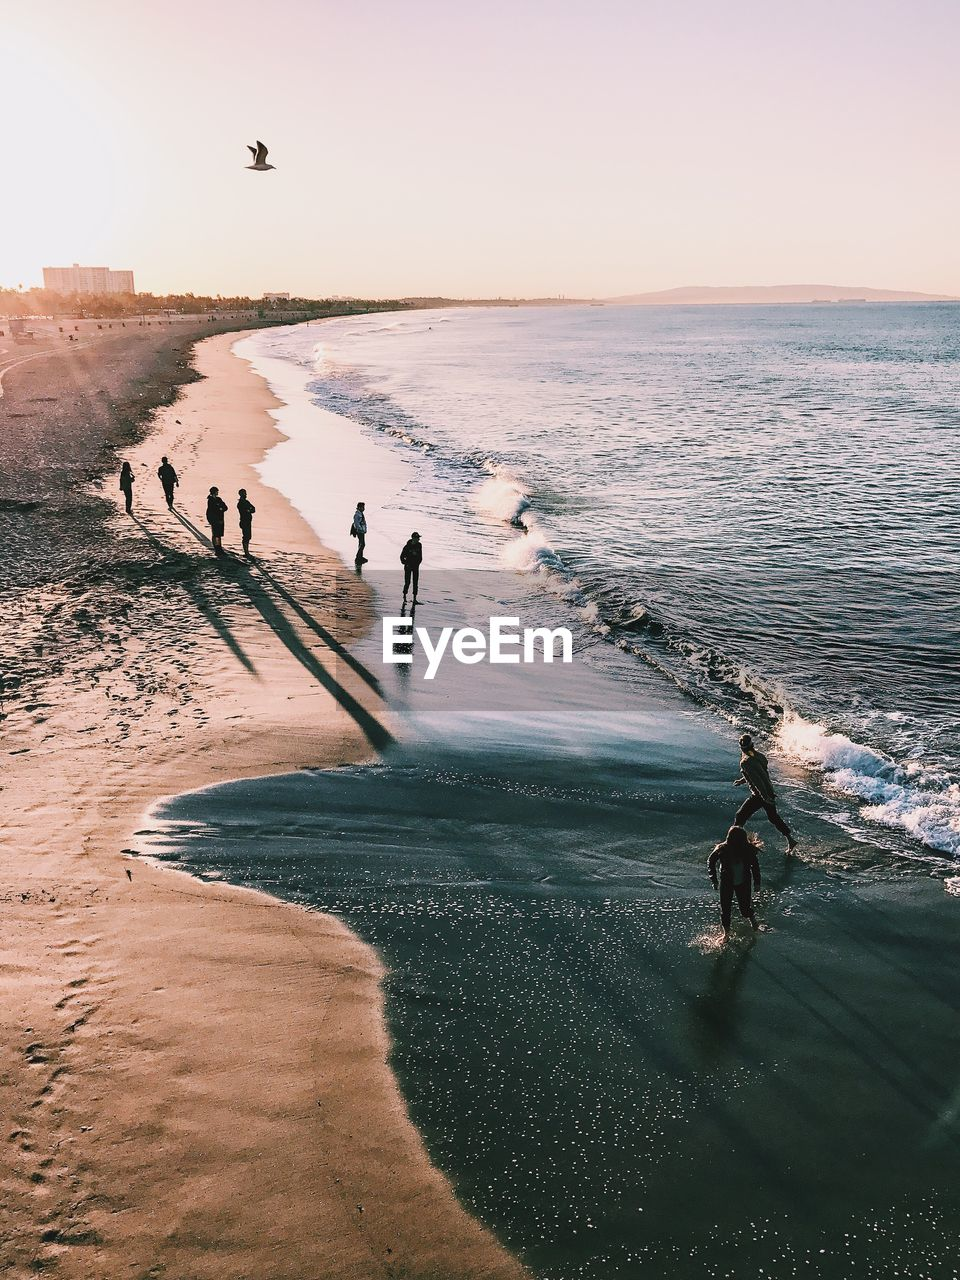 High Angle View Of People Enjoying At Beach Against Sky During Sunset